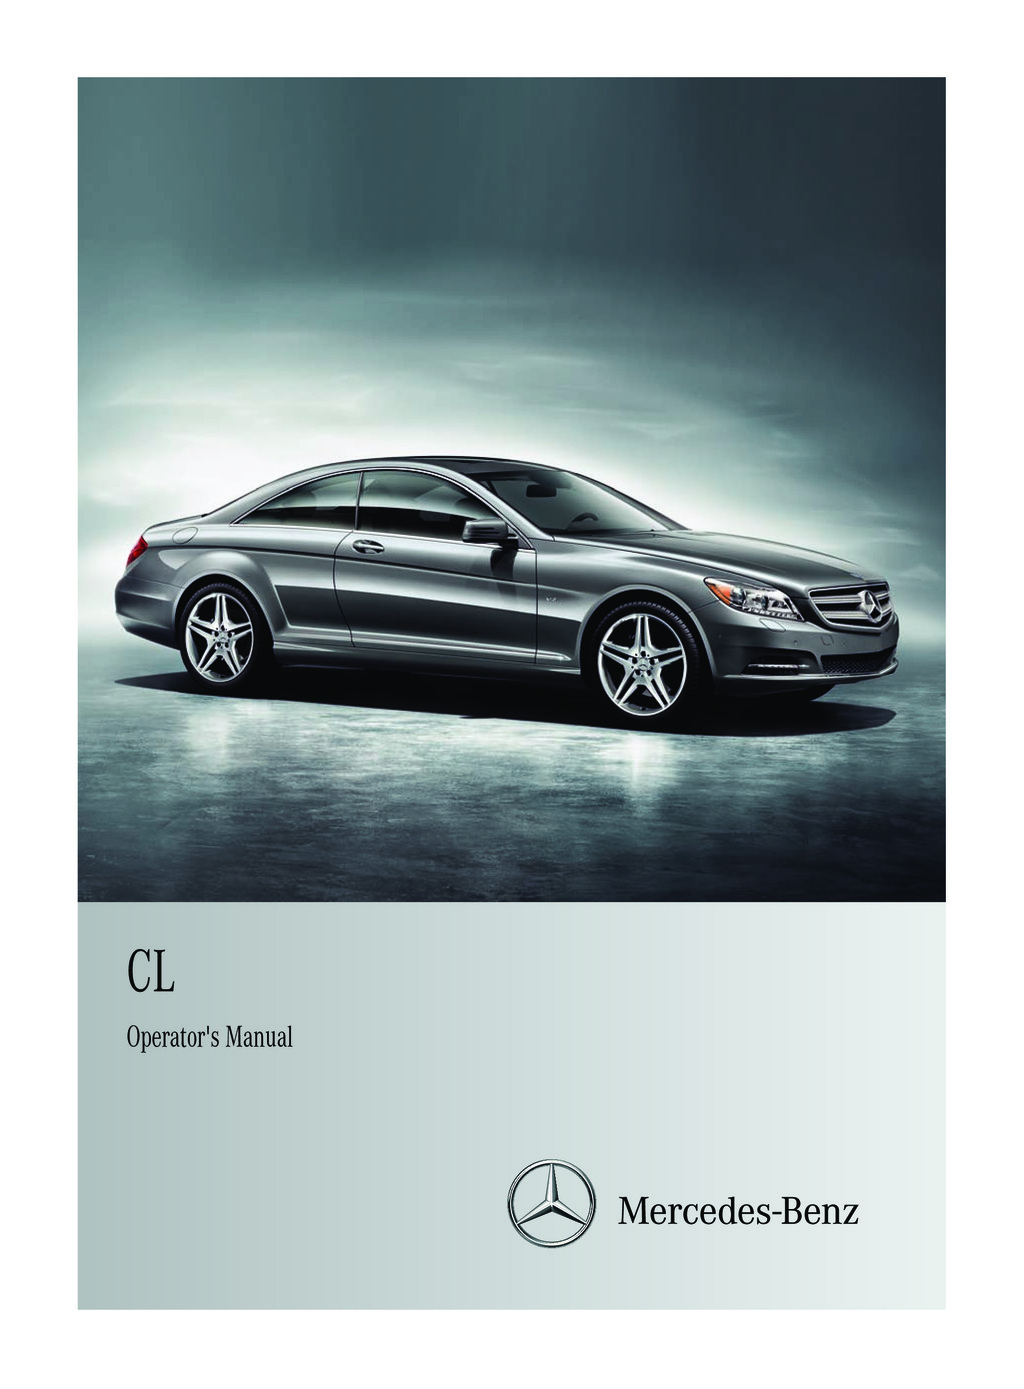 2011 Mercedes-Benz CL Class owners manual